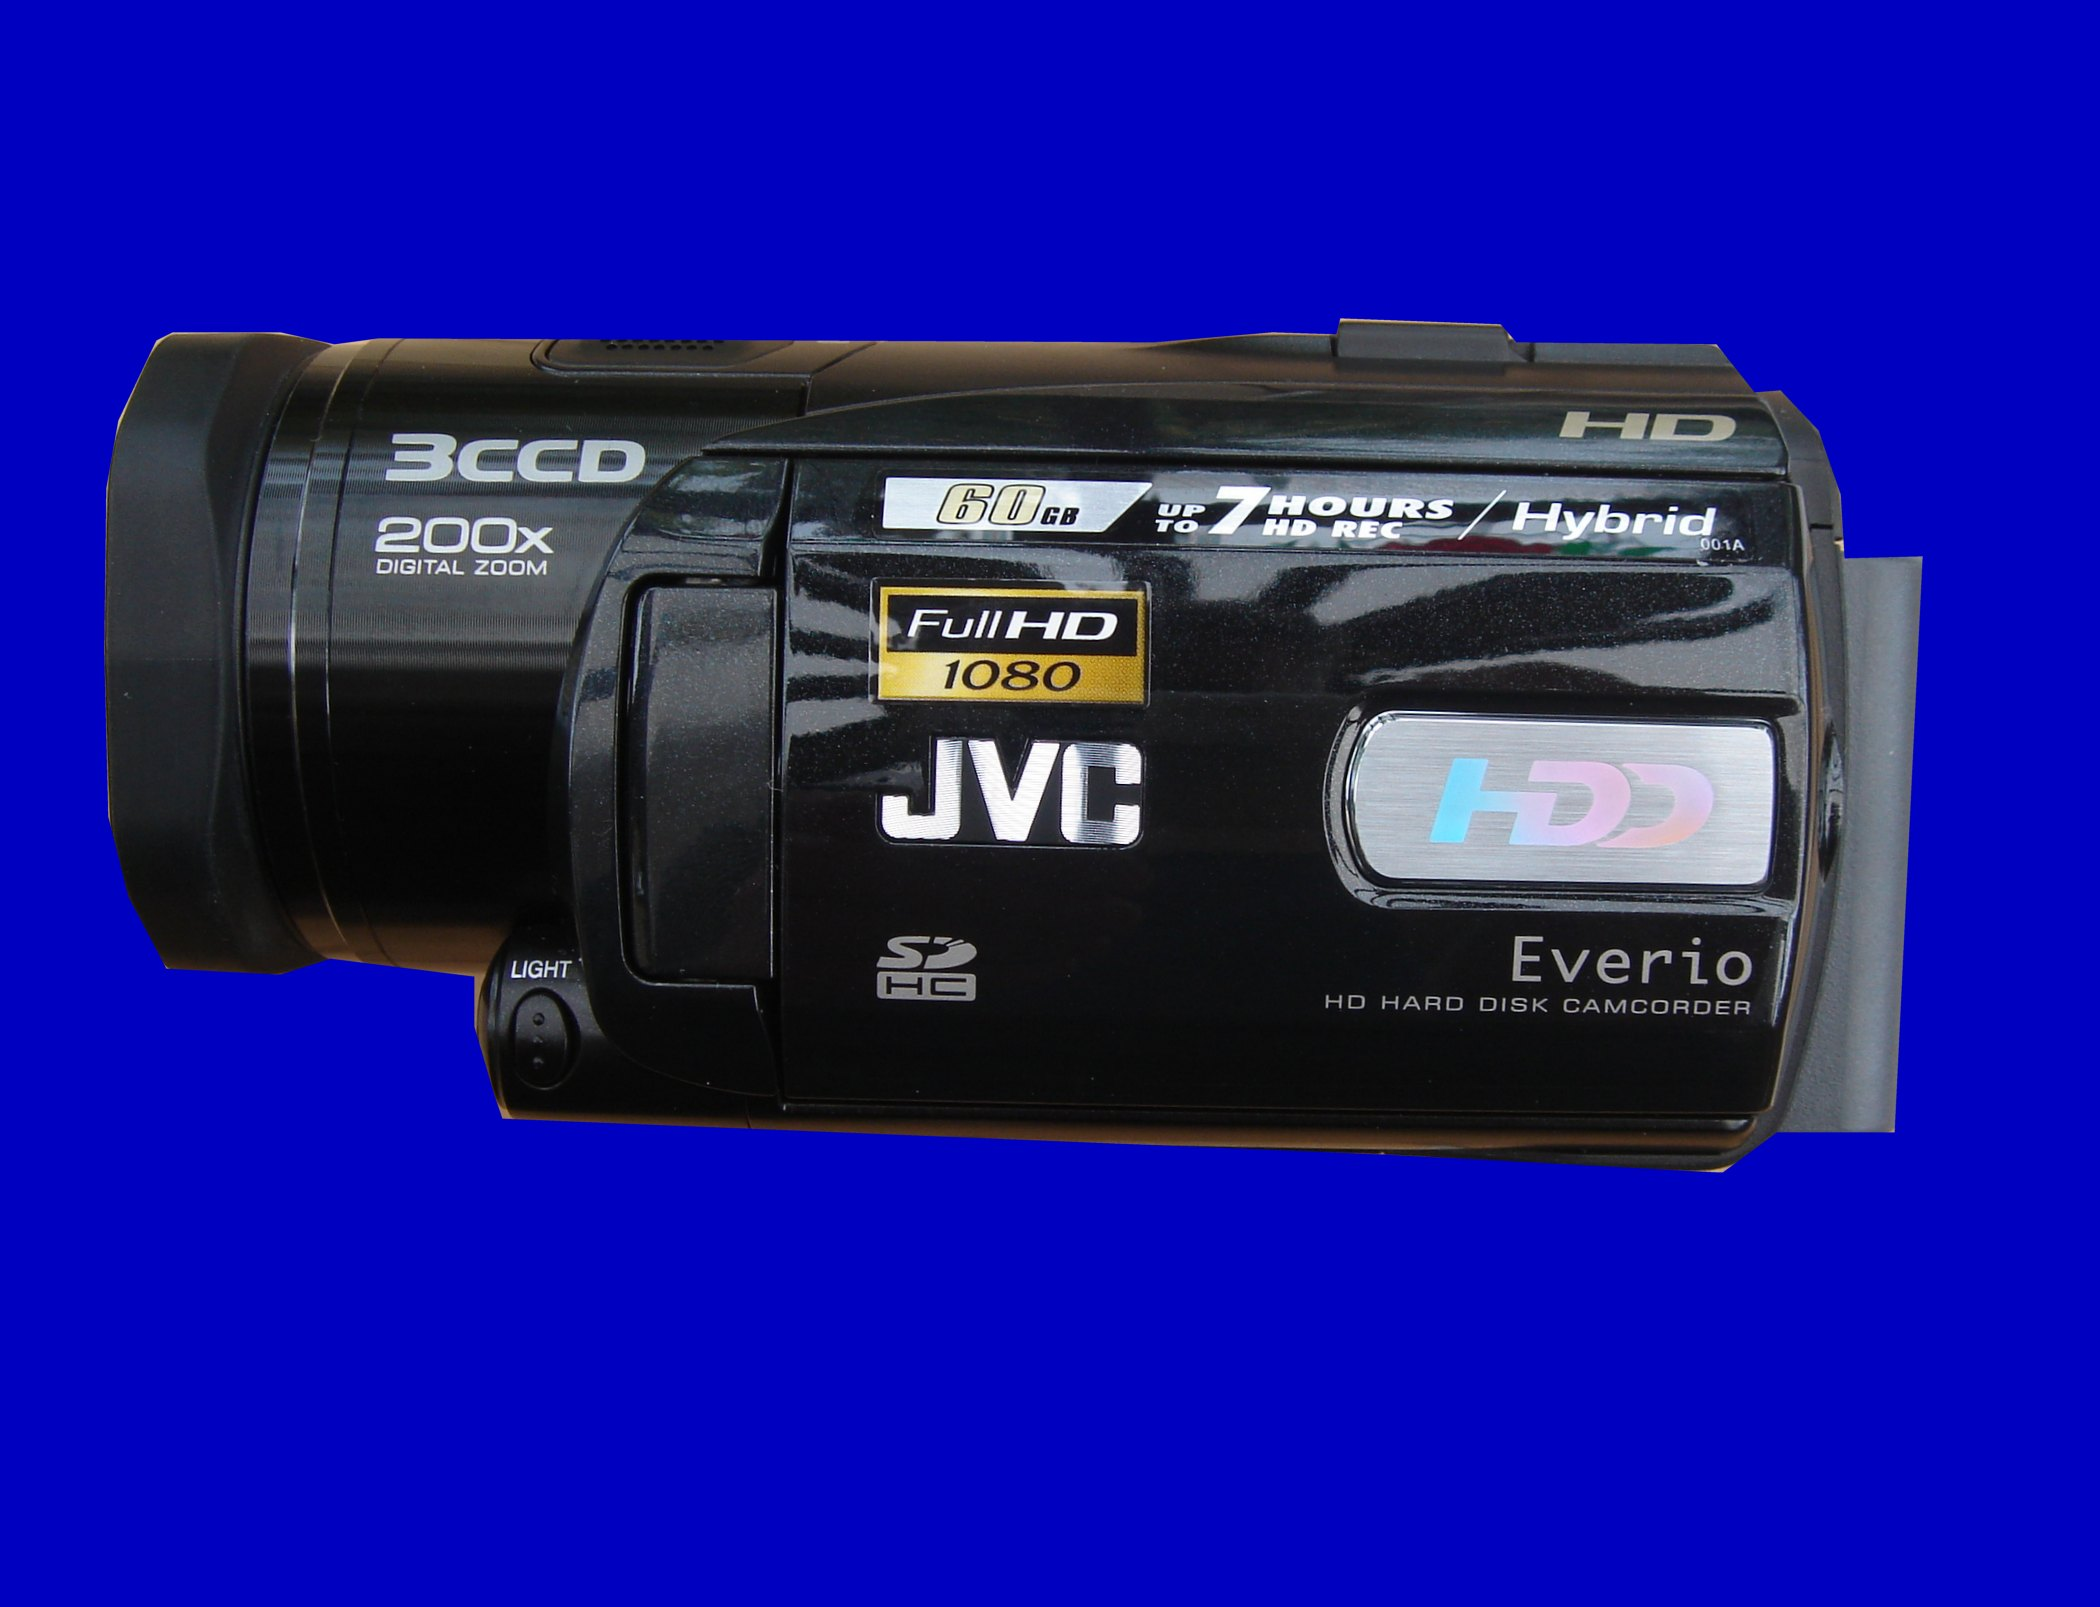 A JVC Everio with HDD error on the screen. This camera had model number GX-HD3EK  and could not access the video clips for playback.